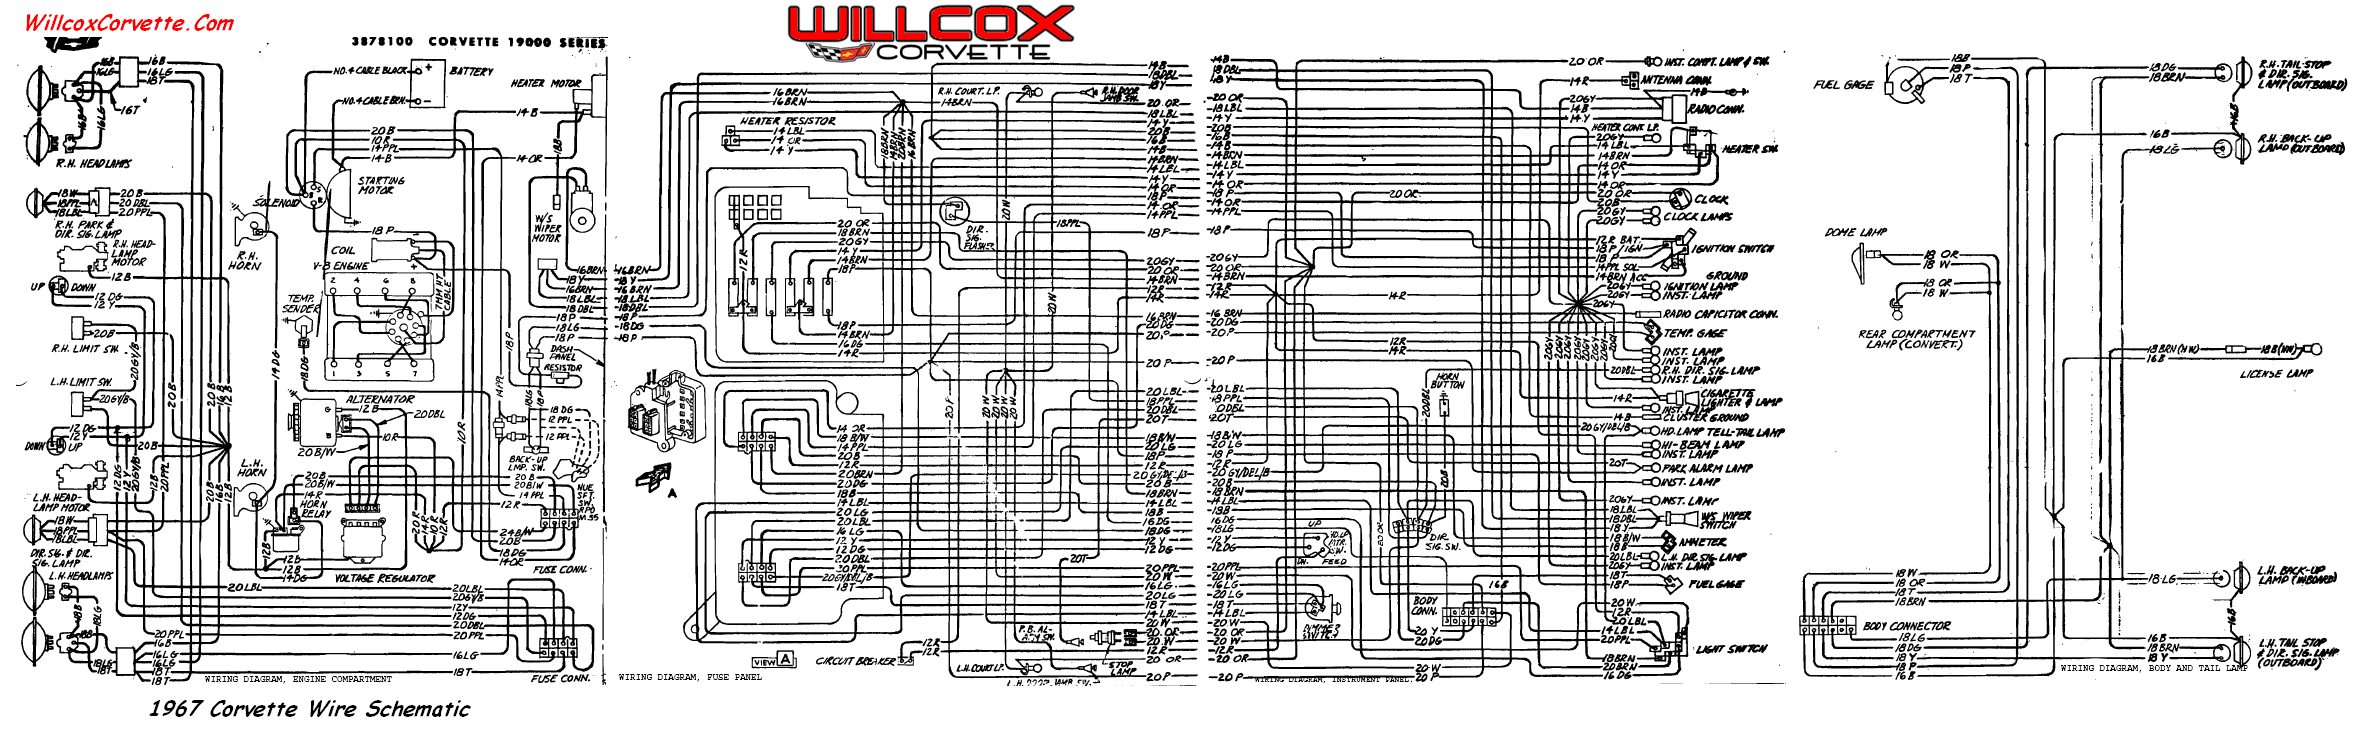 Fabulous 1966 Corvette Fuse Box Diagram Wiring Library Wiring Digital Resources Indicompassionincorg